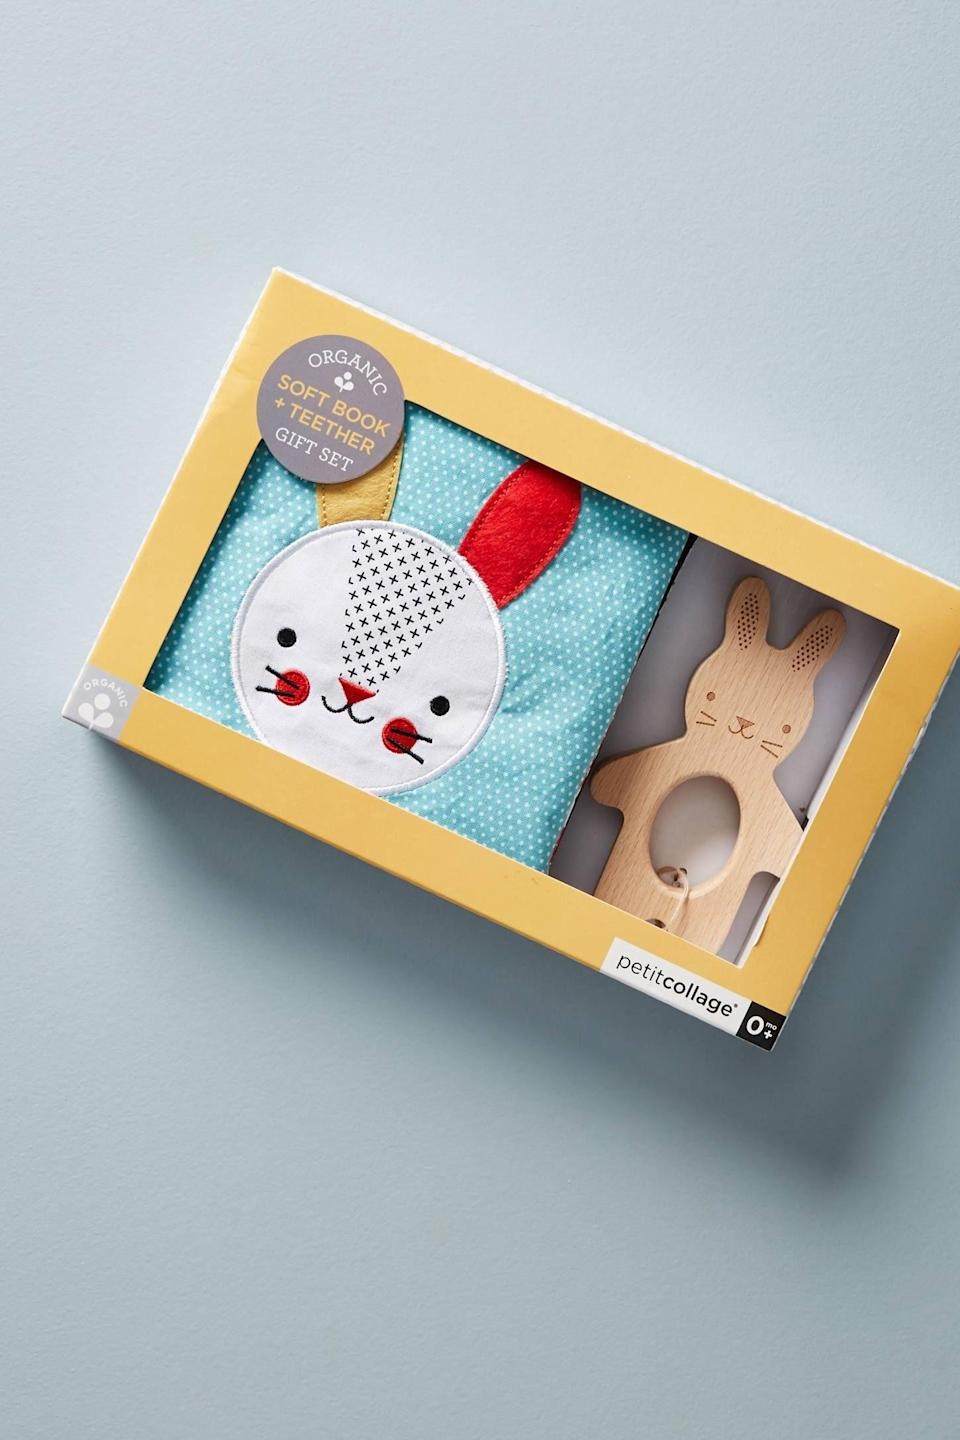 """<p><strong>Anthropologie</strong></p><p>amazon.com</p><p><a href=""""https://www.amazon.com/Petit-Collage-Organic-Beachwood-Teether/dp/B07F3LWTJR?tag=syn-yahoo-20&ascsubtag=%5Bartid%7C10050.g.26570259%5Bsrc%7Cyahoo-us"""" rel=""""nofollow noopener"""" target=""""_blank"""" data-ylk=""""slk:Shop Now"""" class=""""link rapid-noclick-resp"""">Shop Now</a></p><p>You've gotta love a gift set. With a soft bunny book—made with organic cotton—and a matching wooden teether, your little one is all set for the day. </p>"""